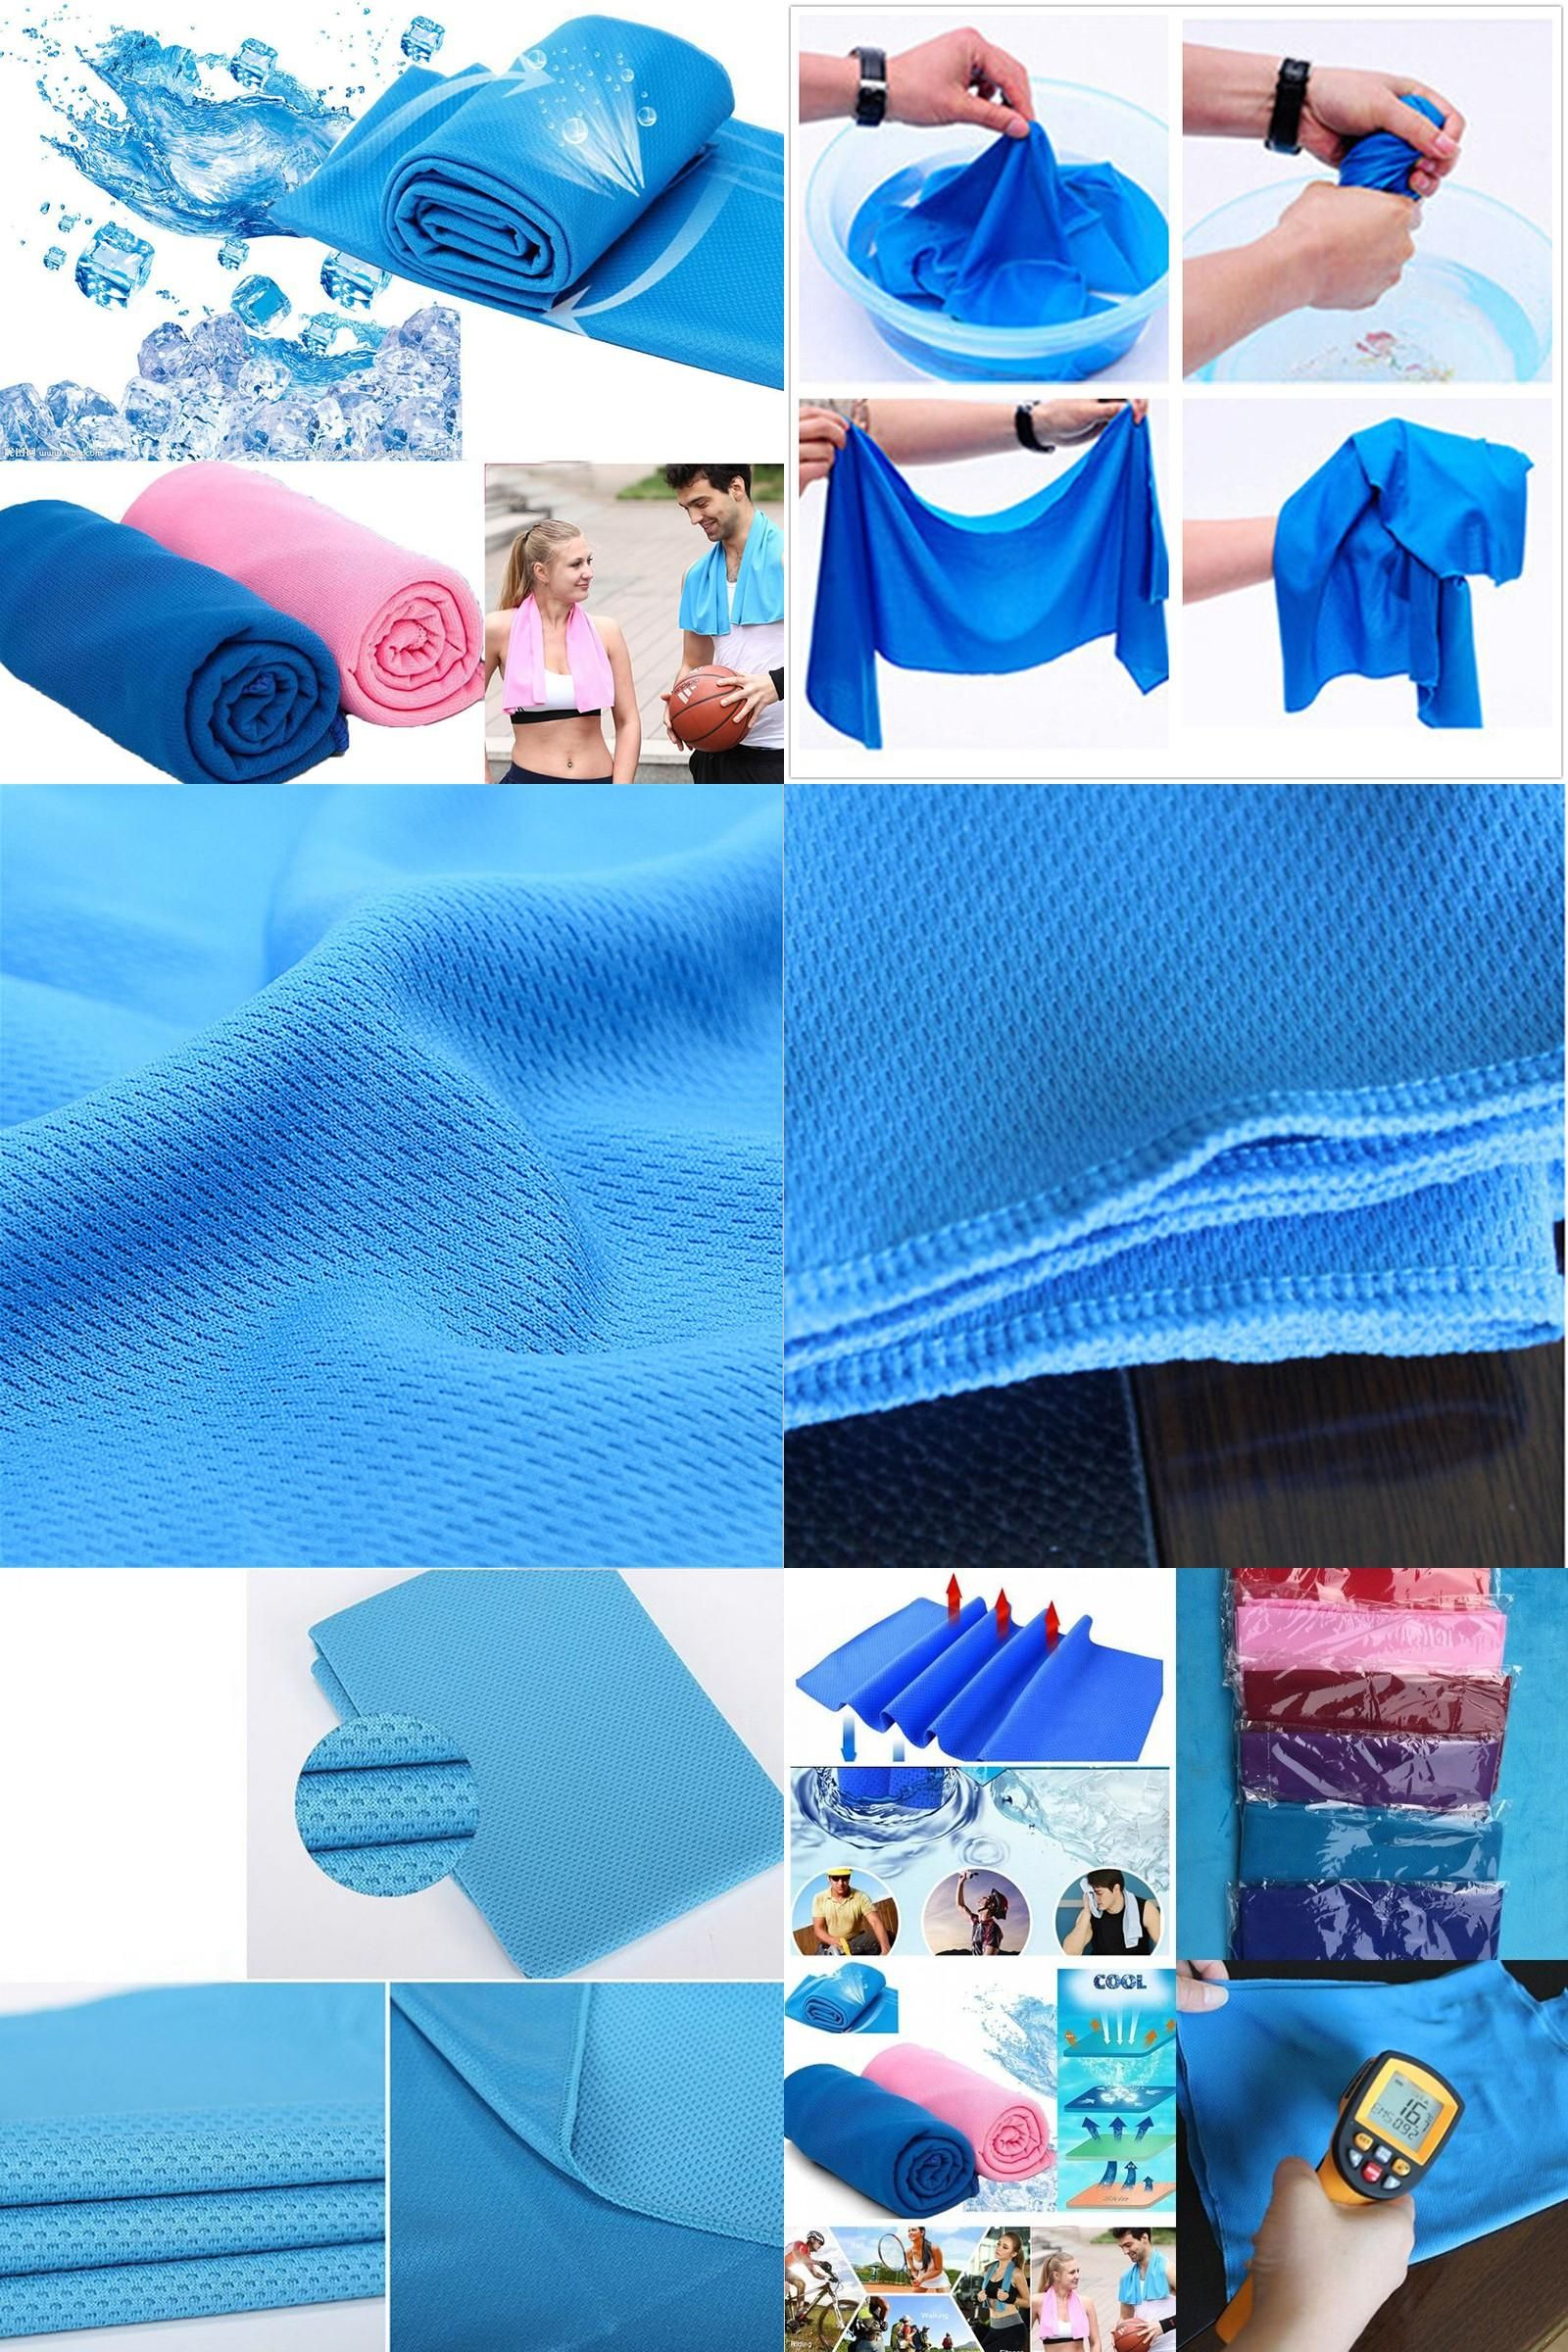 Visit To Buy Outdoor Sports Cooling Towel Ice Towel Summer Ice Cold Towel Pva Hypothermia Quick Dry 33 90cm Unisex Spo Cold Towels Cooling Towels Sport Towel